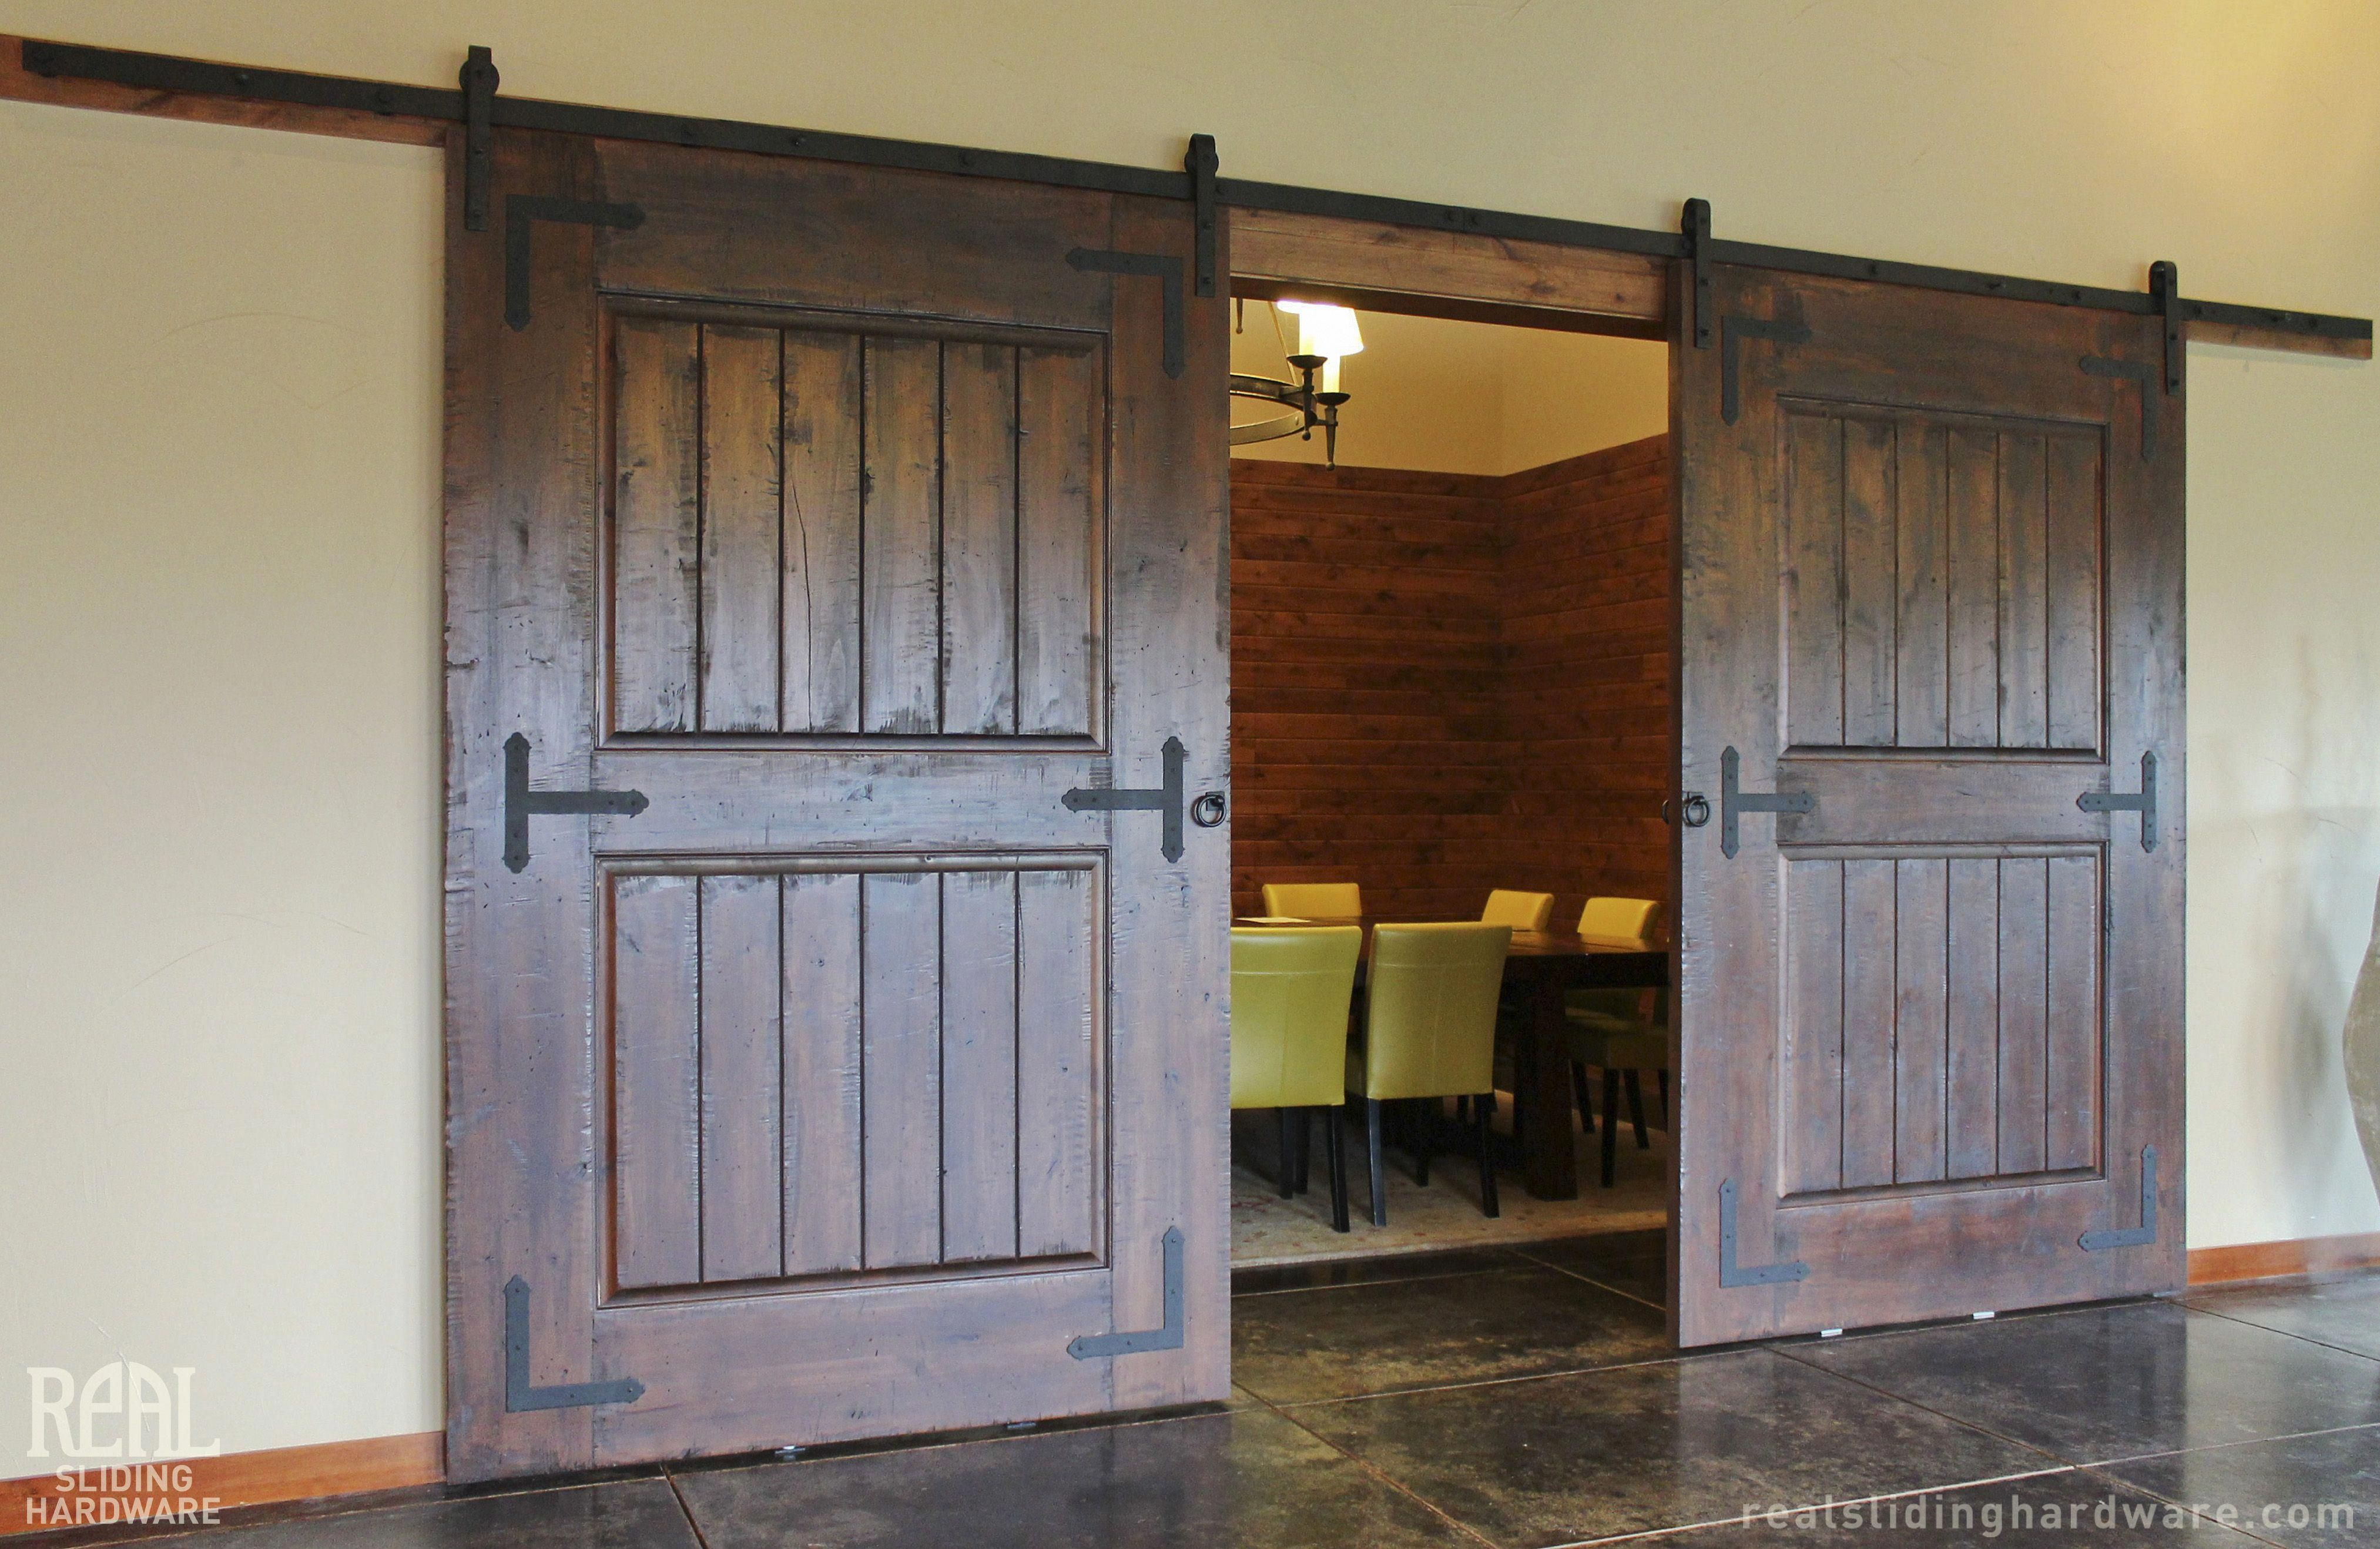 Wine Tasting Room Gets An Old World Look With Distressed Barn Doors And Hardware Barn Doors For Sale Rustic Barn Door Rustic Barn Door Hardware